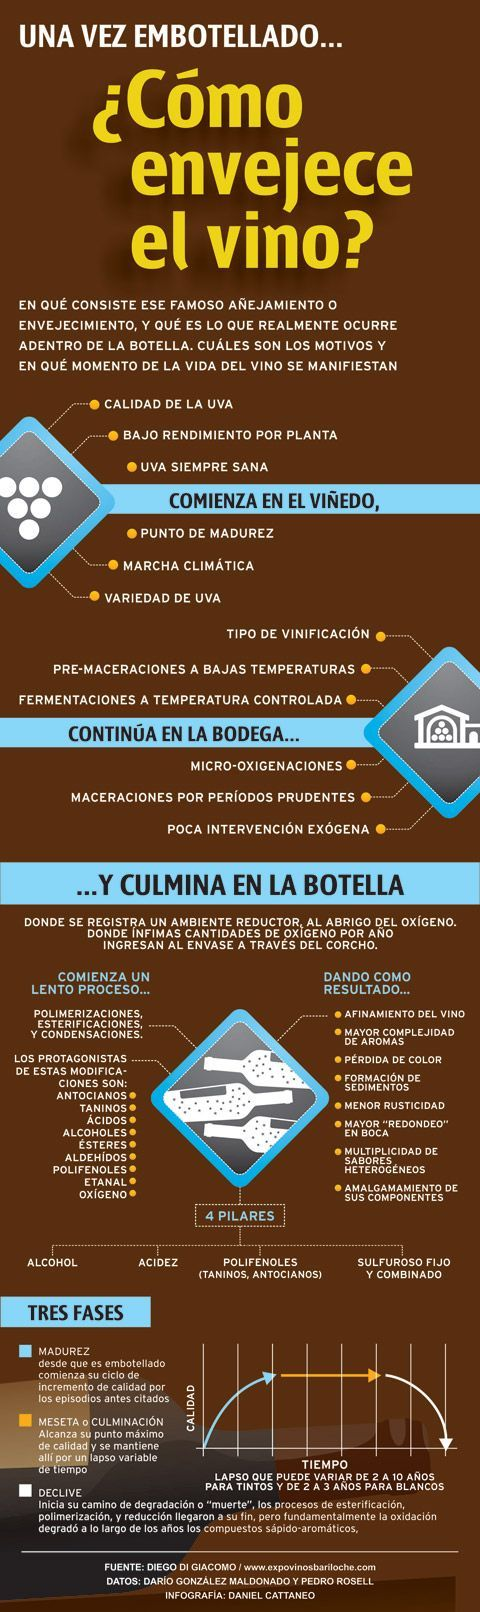 10 infografías sobre el vino que te van a interesar | The Big Wine Theory